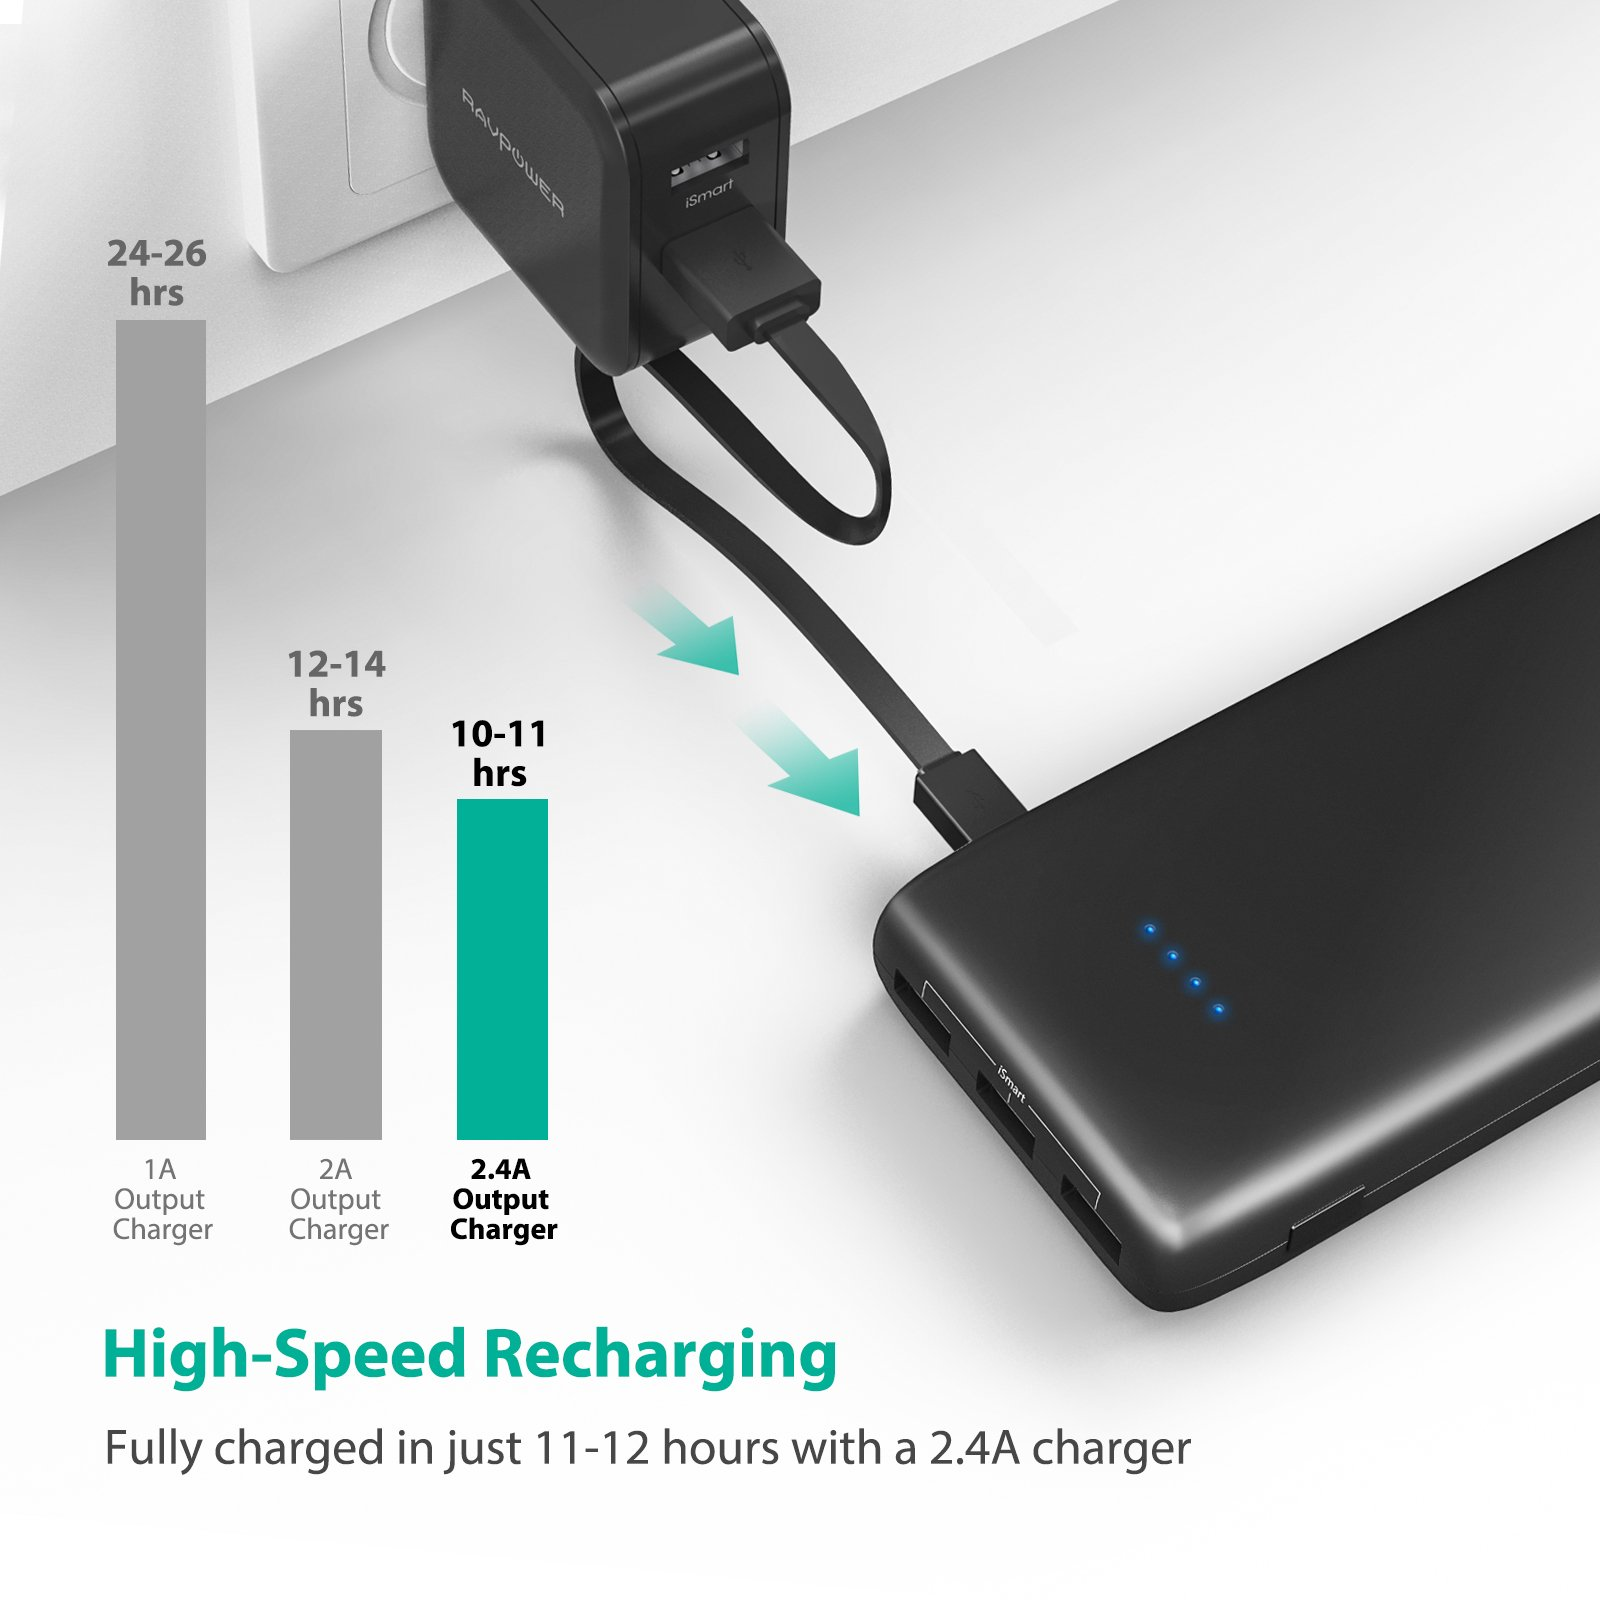 RAVPower Portable Charger 22000mAh External Battery Pack 22000 Power Banks 5.8A Output 3-Port (2.4A Input, iSmart 2.0 USB Ports, Li-polymer Phone Charger) For Smartphone Tablet – Black by RAVPower (Image #6)